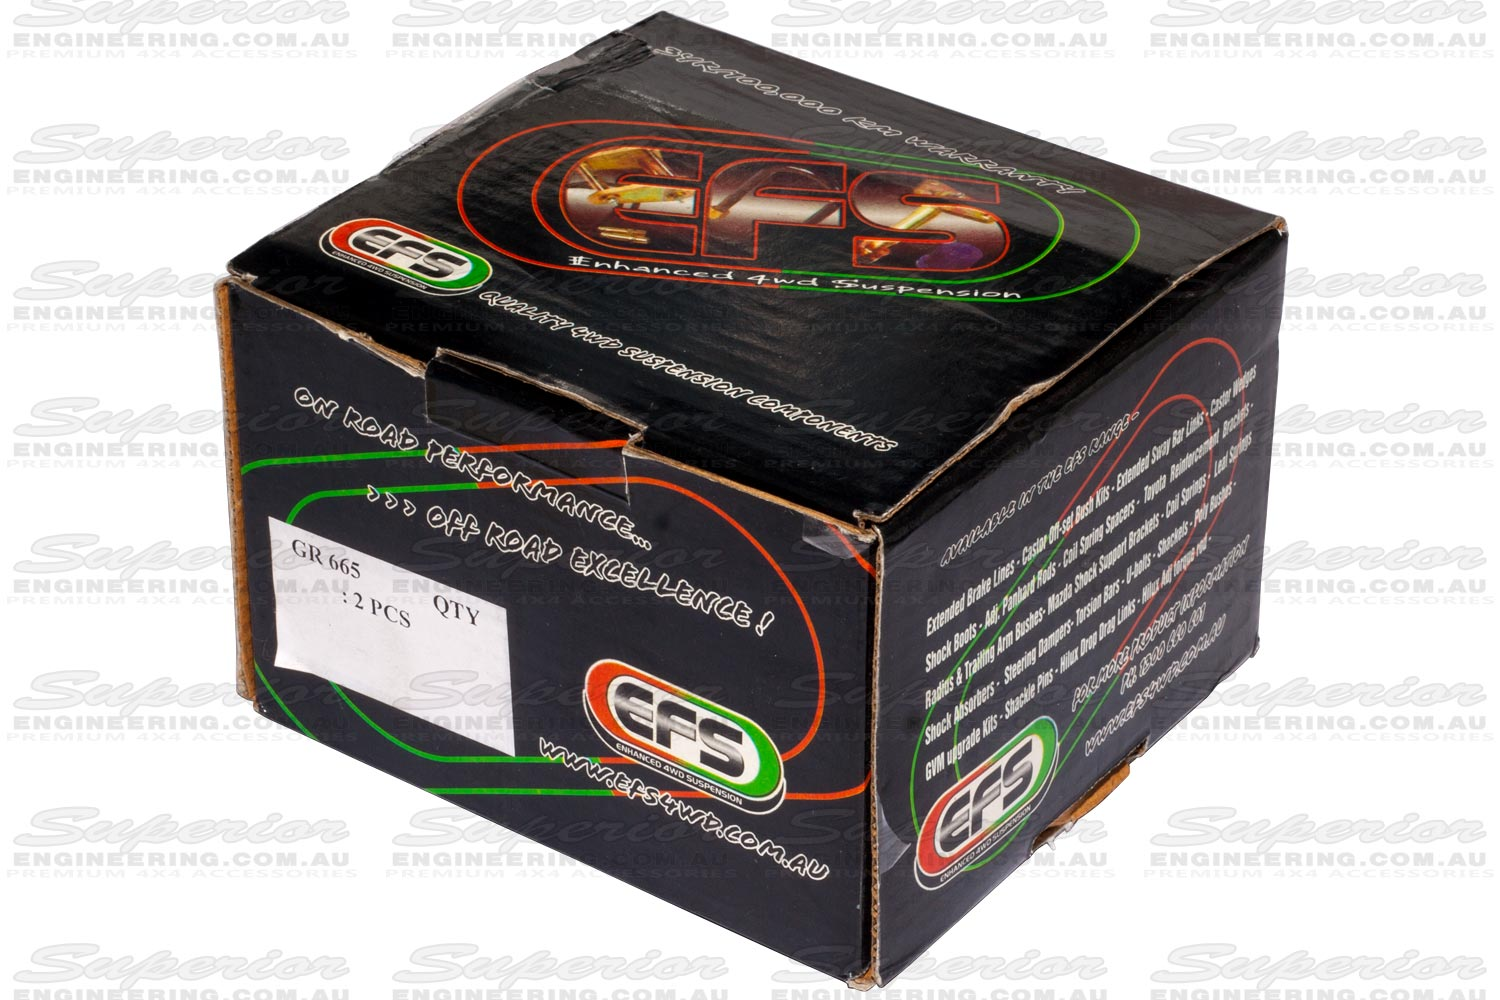 Unopened box containing a set of EFS Shackles